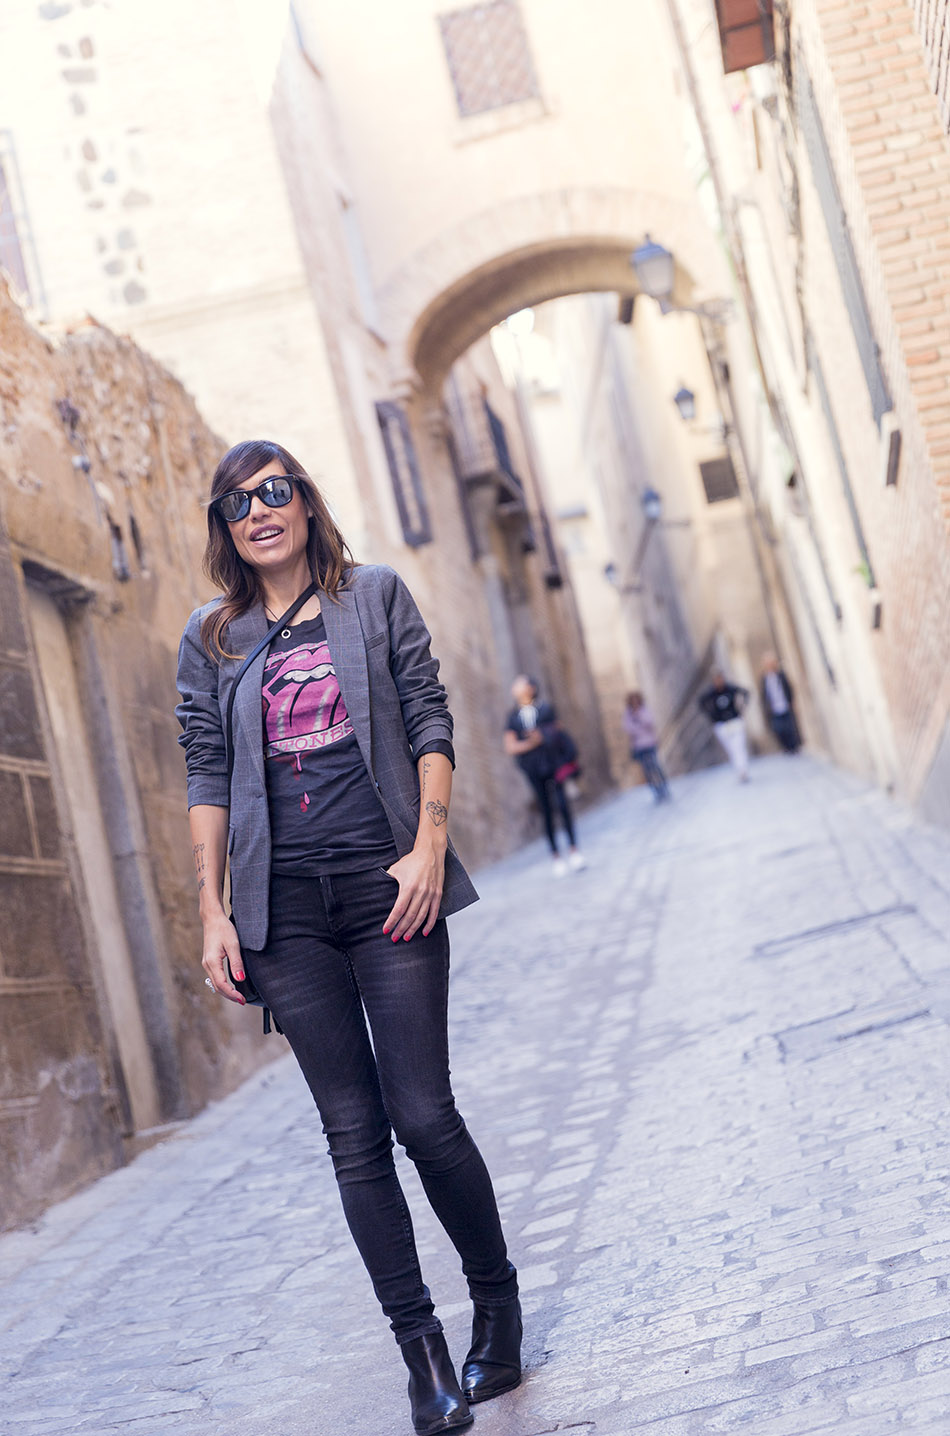 street-style-october-2016-outfits-review-barbara-crespo-12